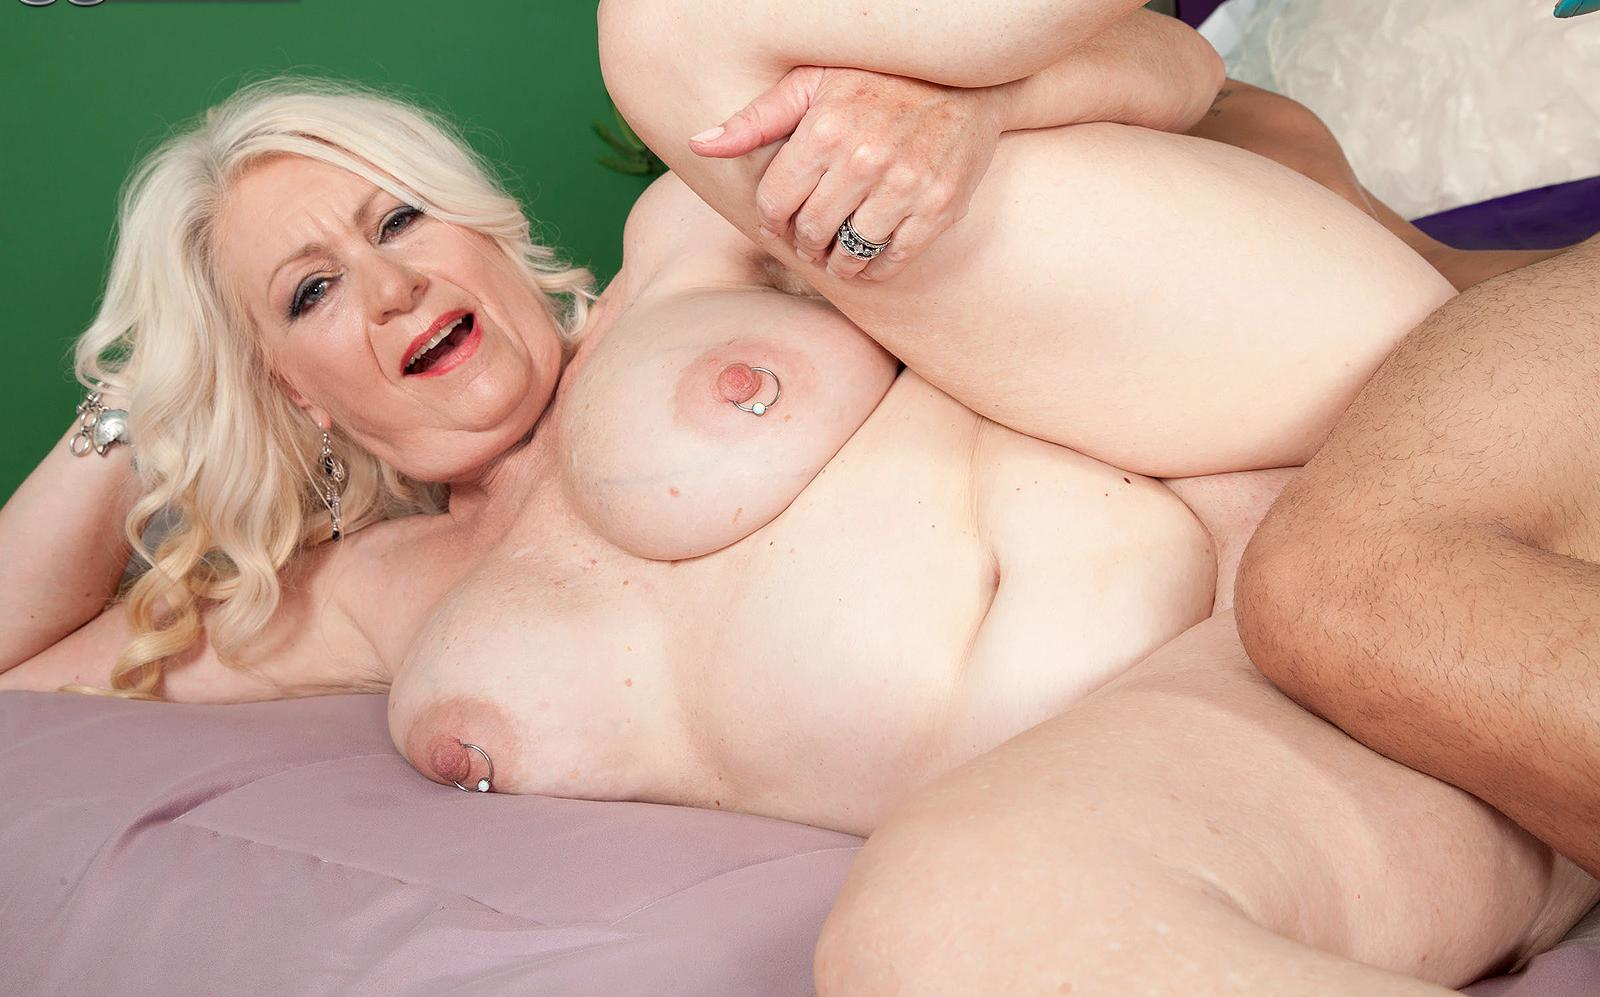 Brianna ,a  granny who has a huge interest to take it  deep in her hole